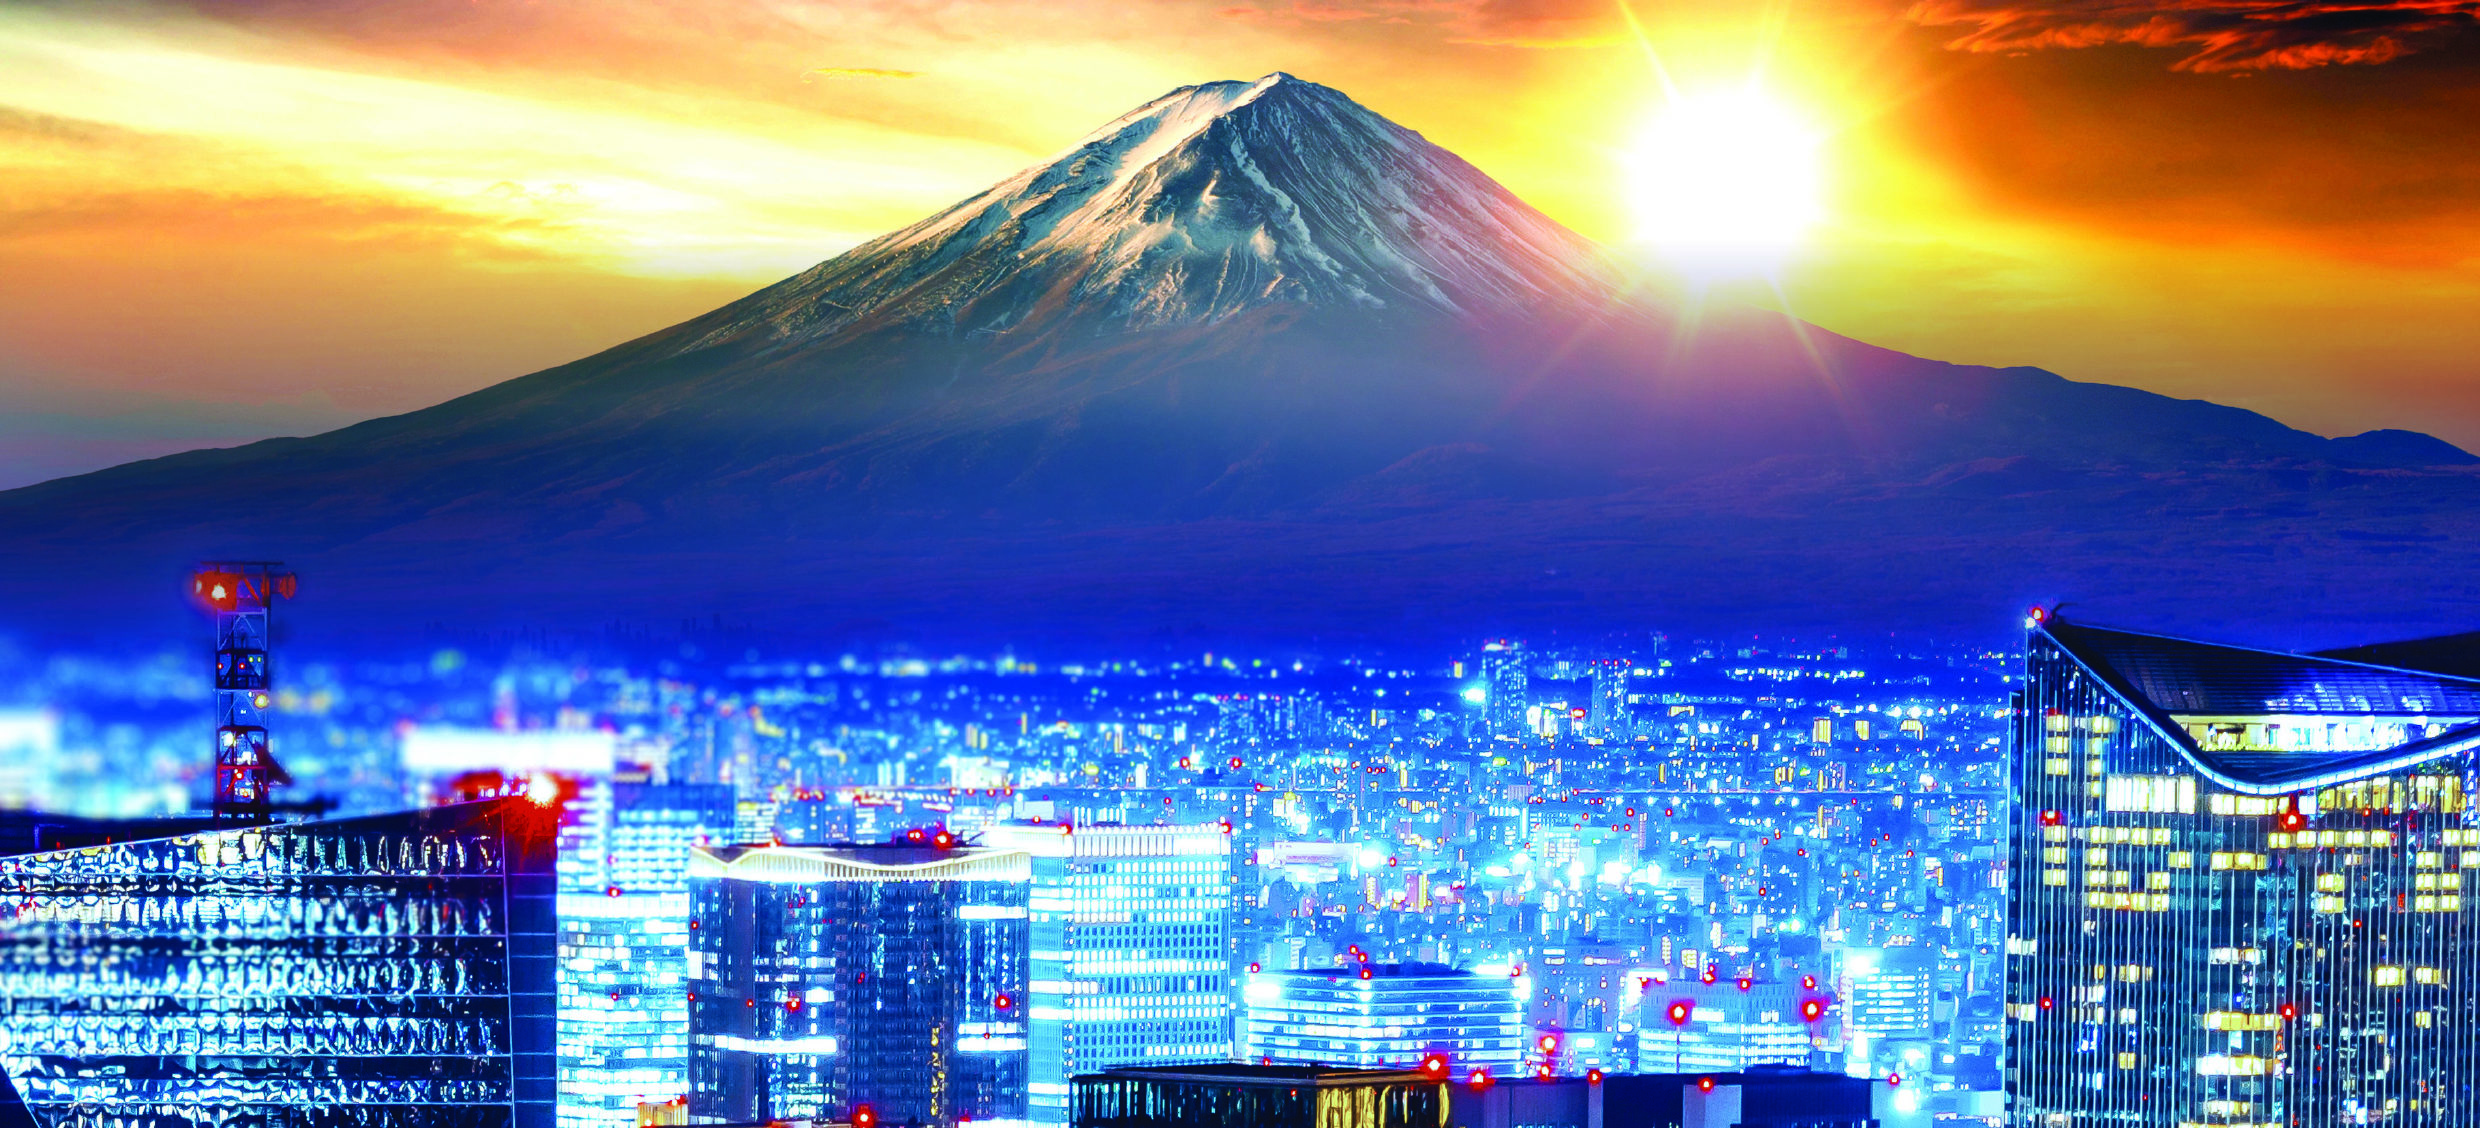 Tokyo city scape with Mt Fuji in the background